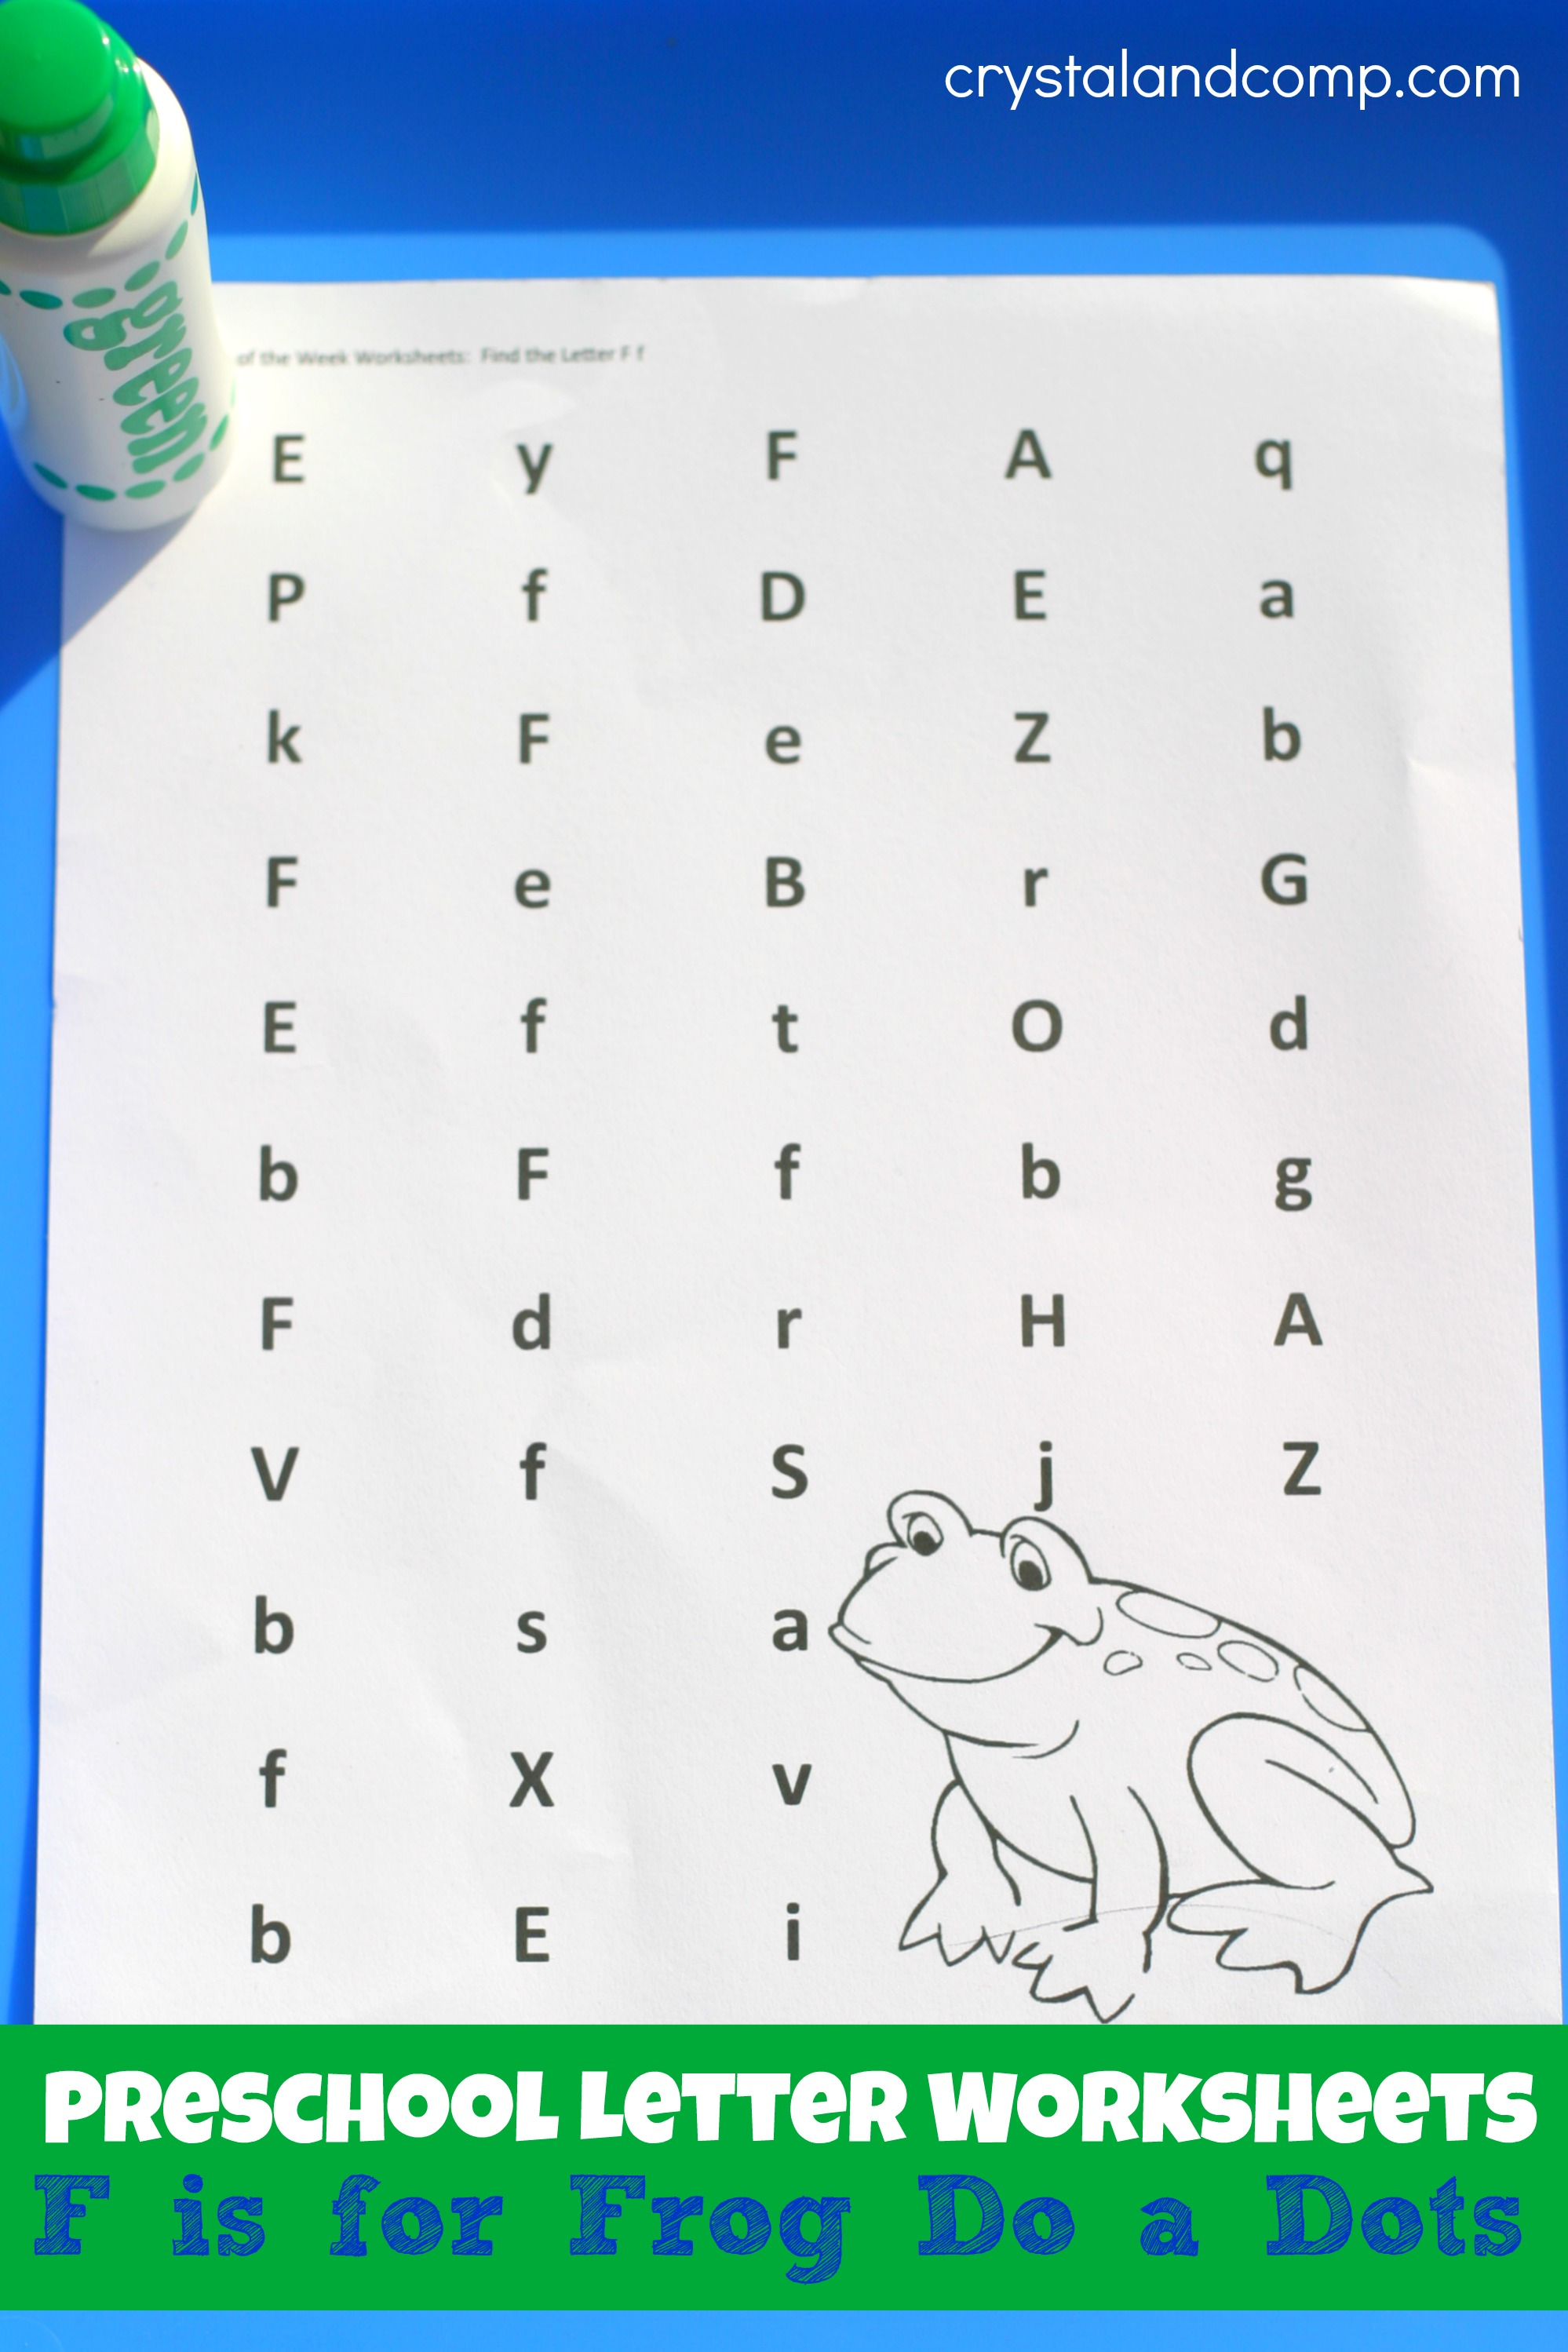 preschool letter worksheets f is for frog. Black Bedroom Furniture Sets. Home Design Ideas